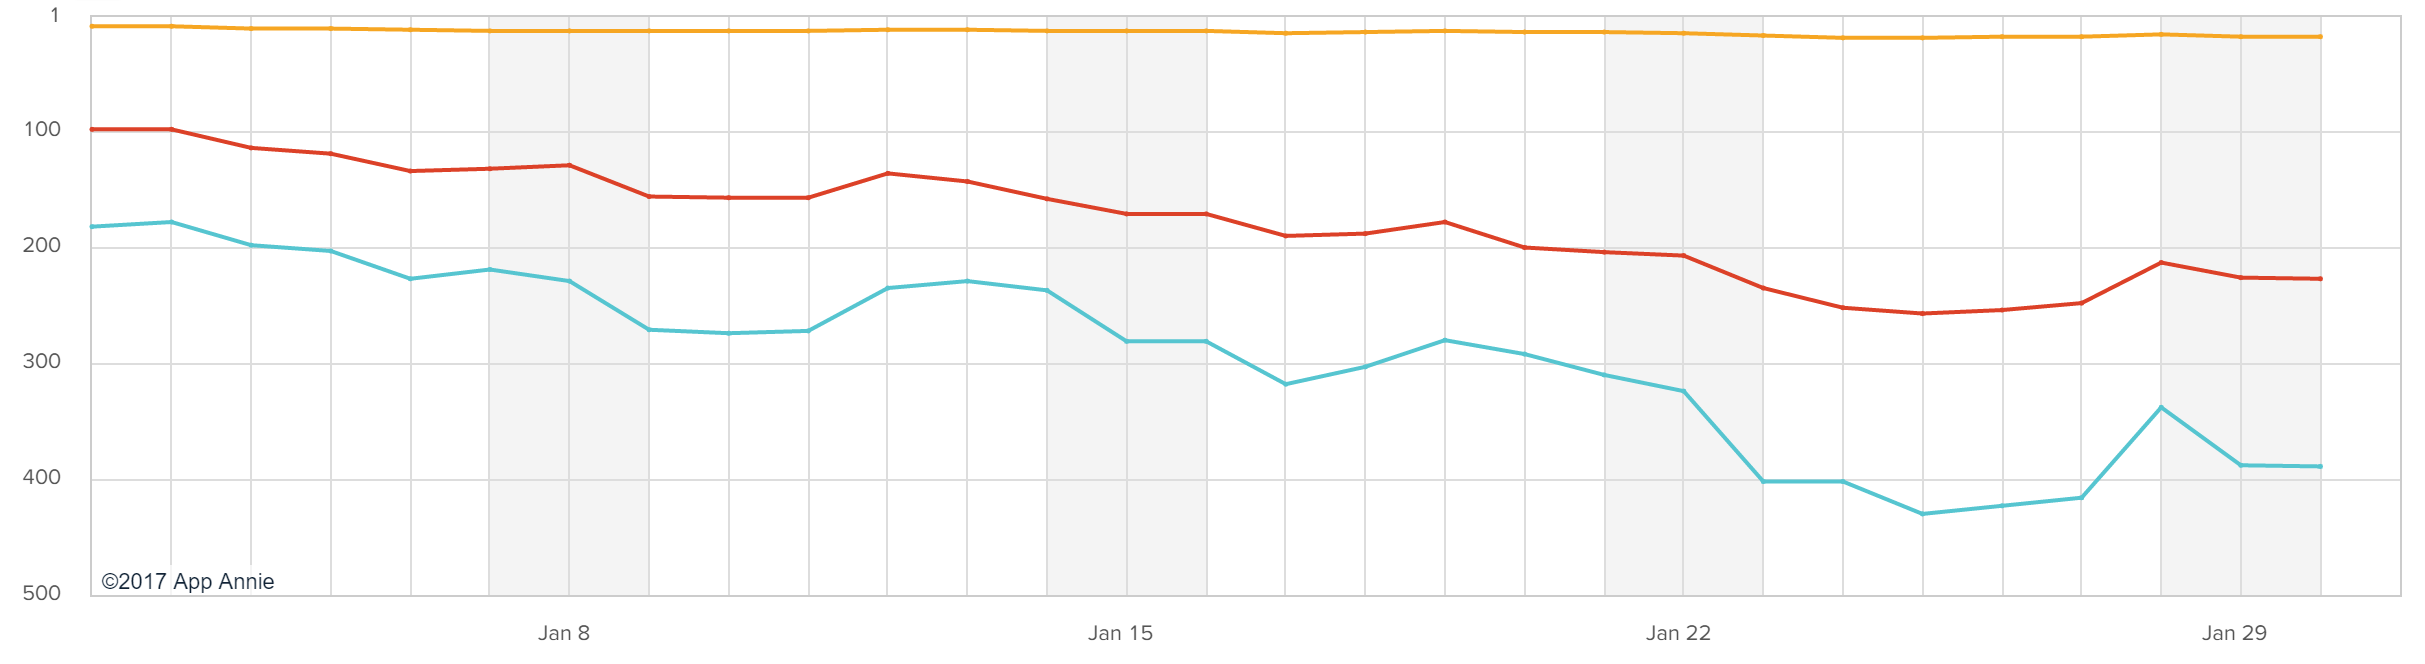 canada google allo rankings on the play store graph